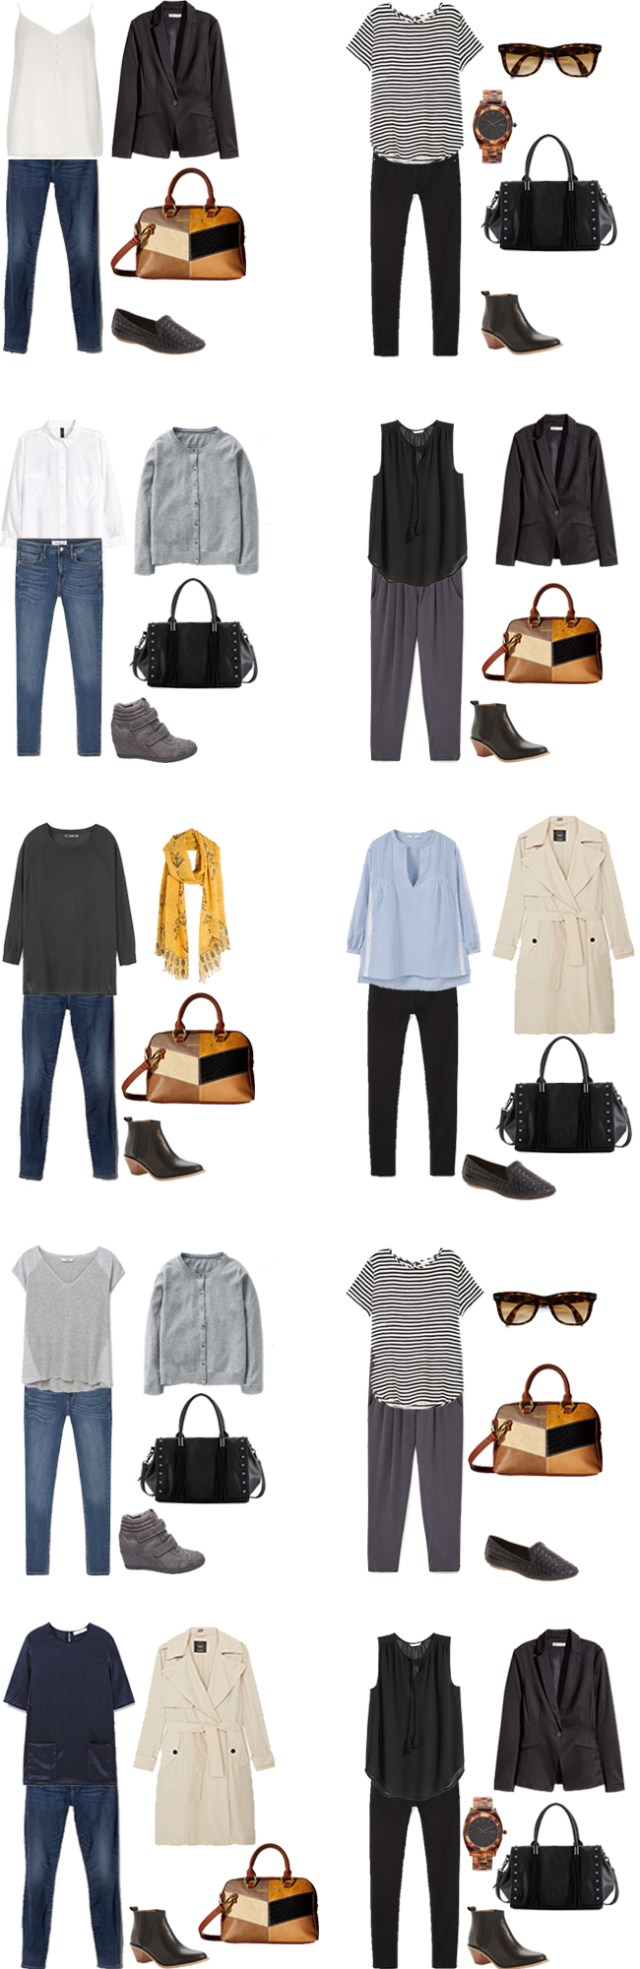 What to wear on a business trip Outfit Options 11-20 #travel #travelcapsule #workwardrobe #workcapsule